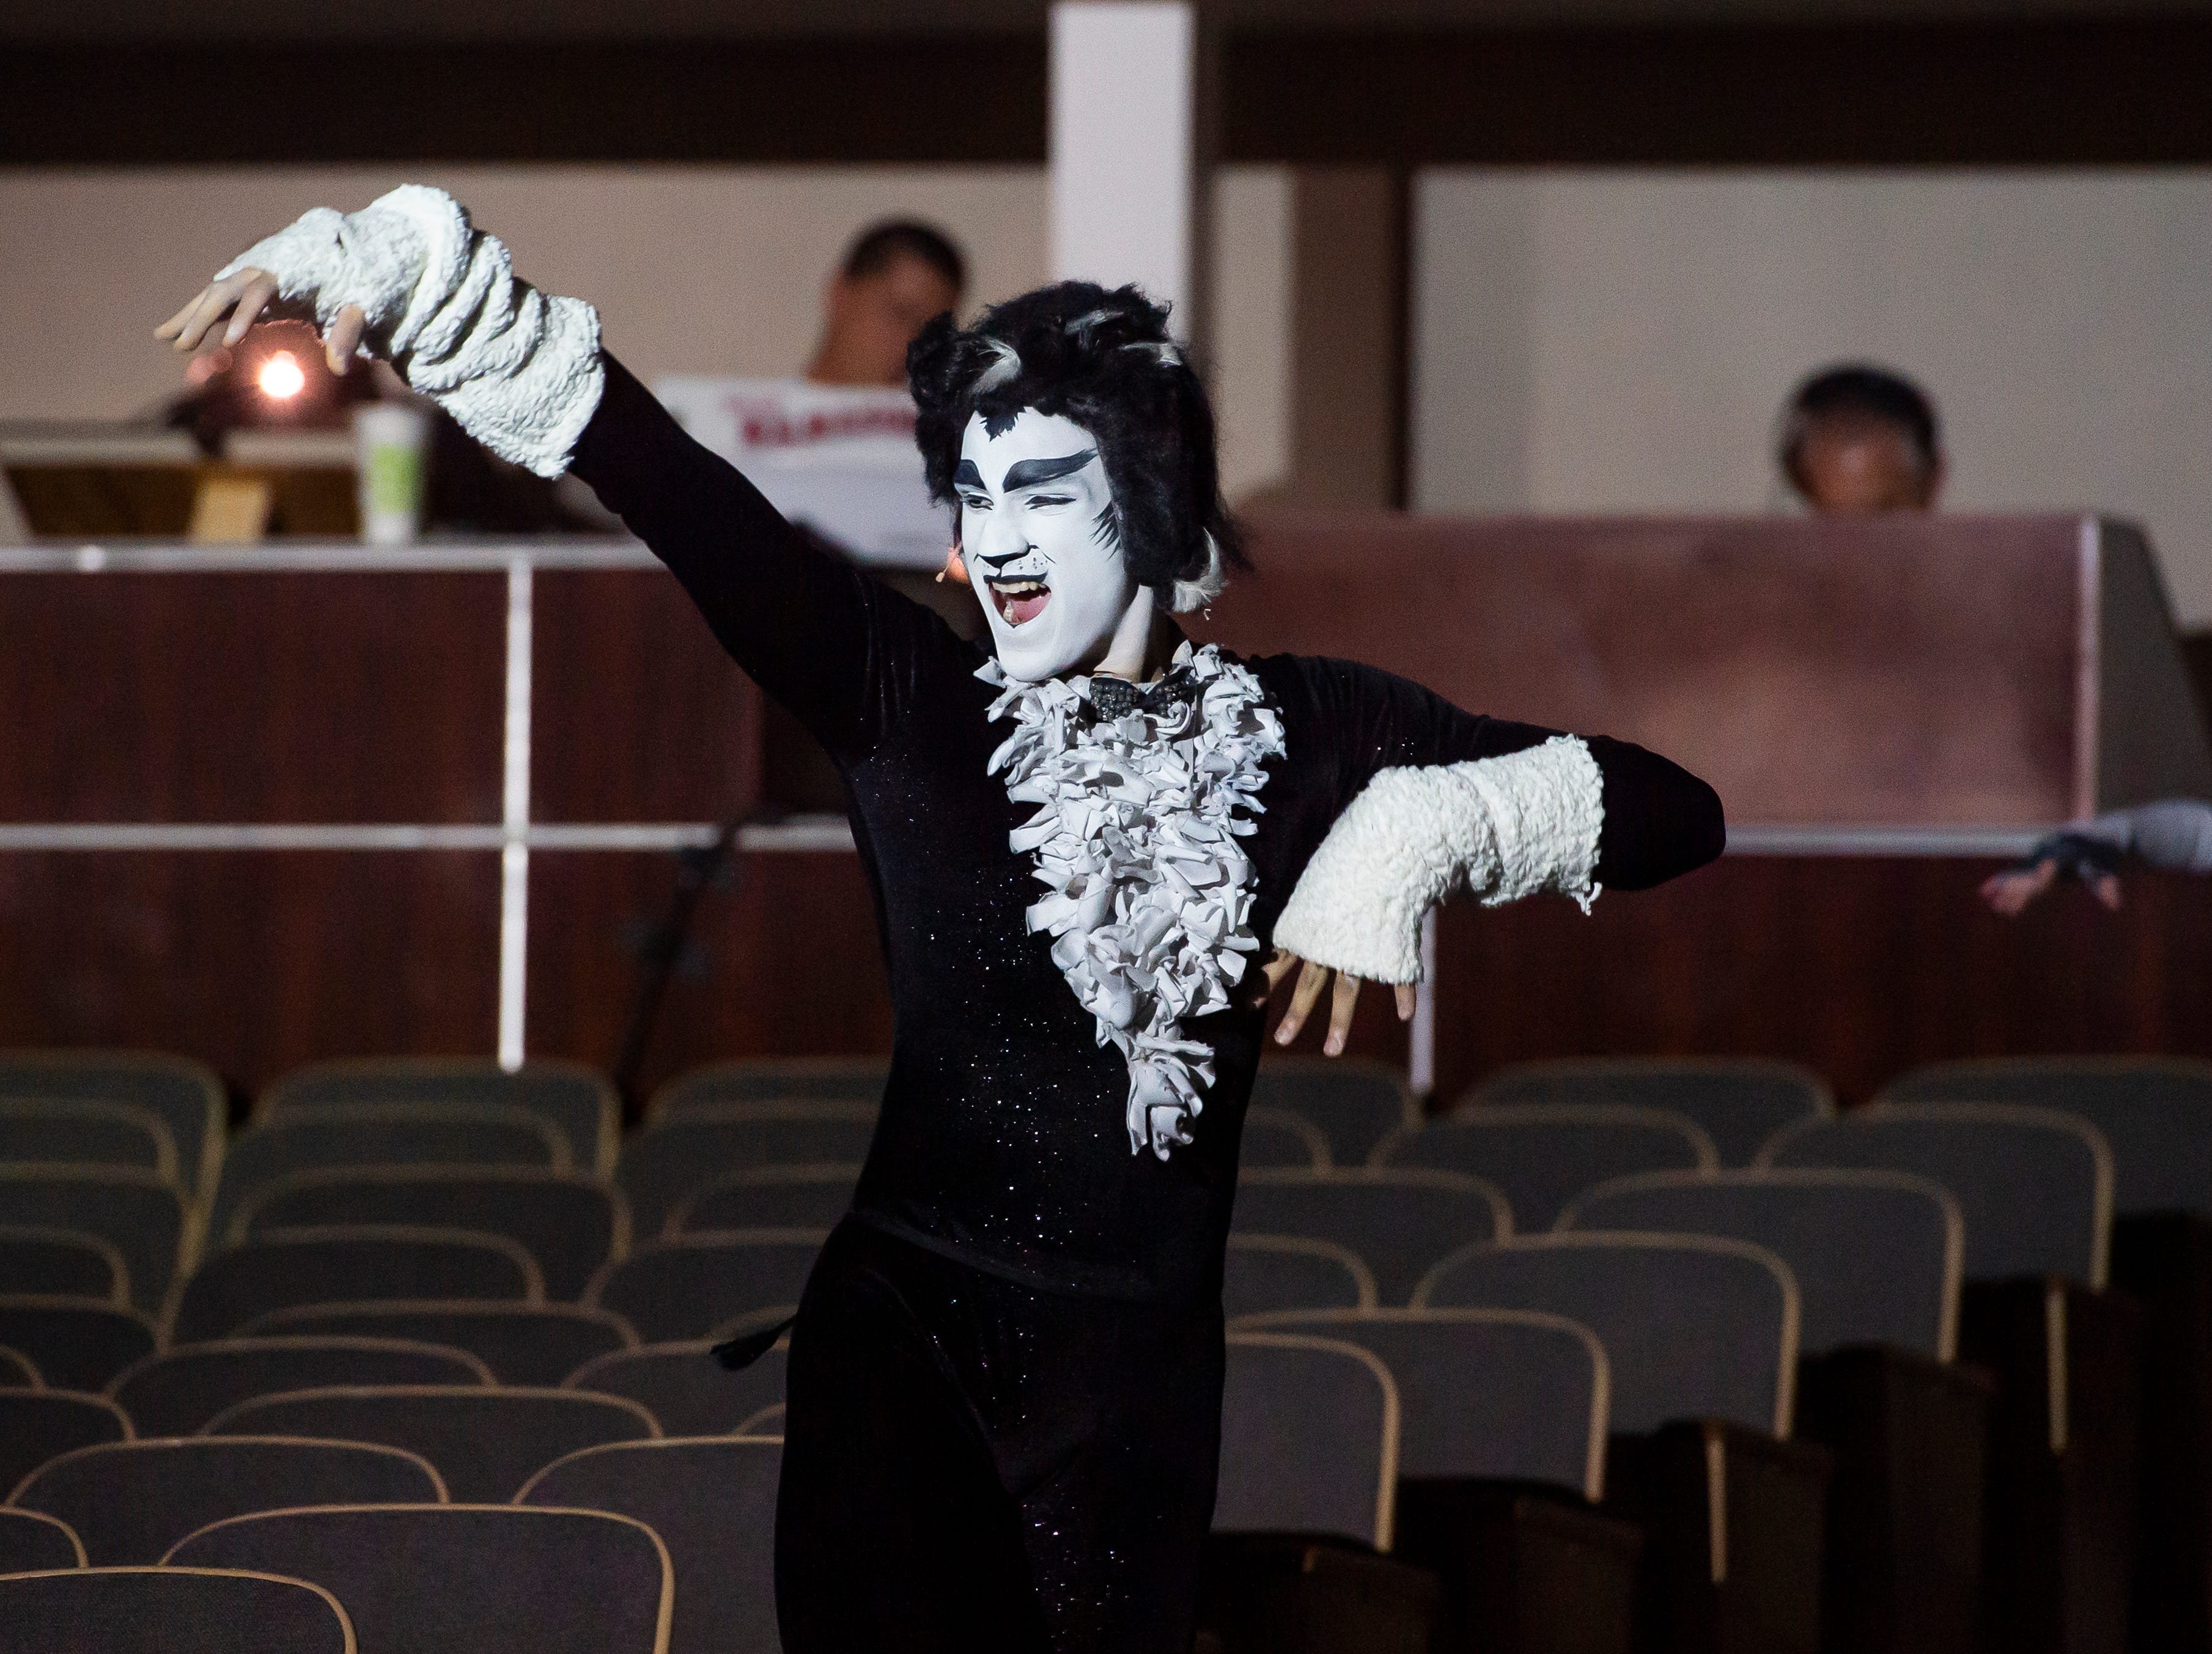 """Malcolm Ellis makes an entrance during a dress rehearsal for the Hanover High School production of the musical """"Cats"""" on Wednesday, April 10, 2019. Ellis performs the role of principle character Mr. Mistoffelees."""